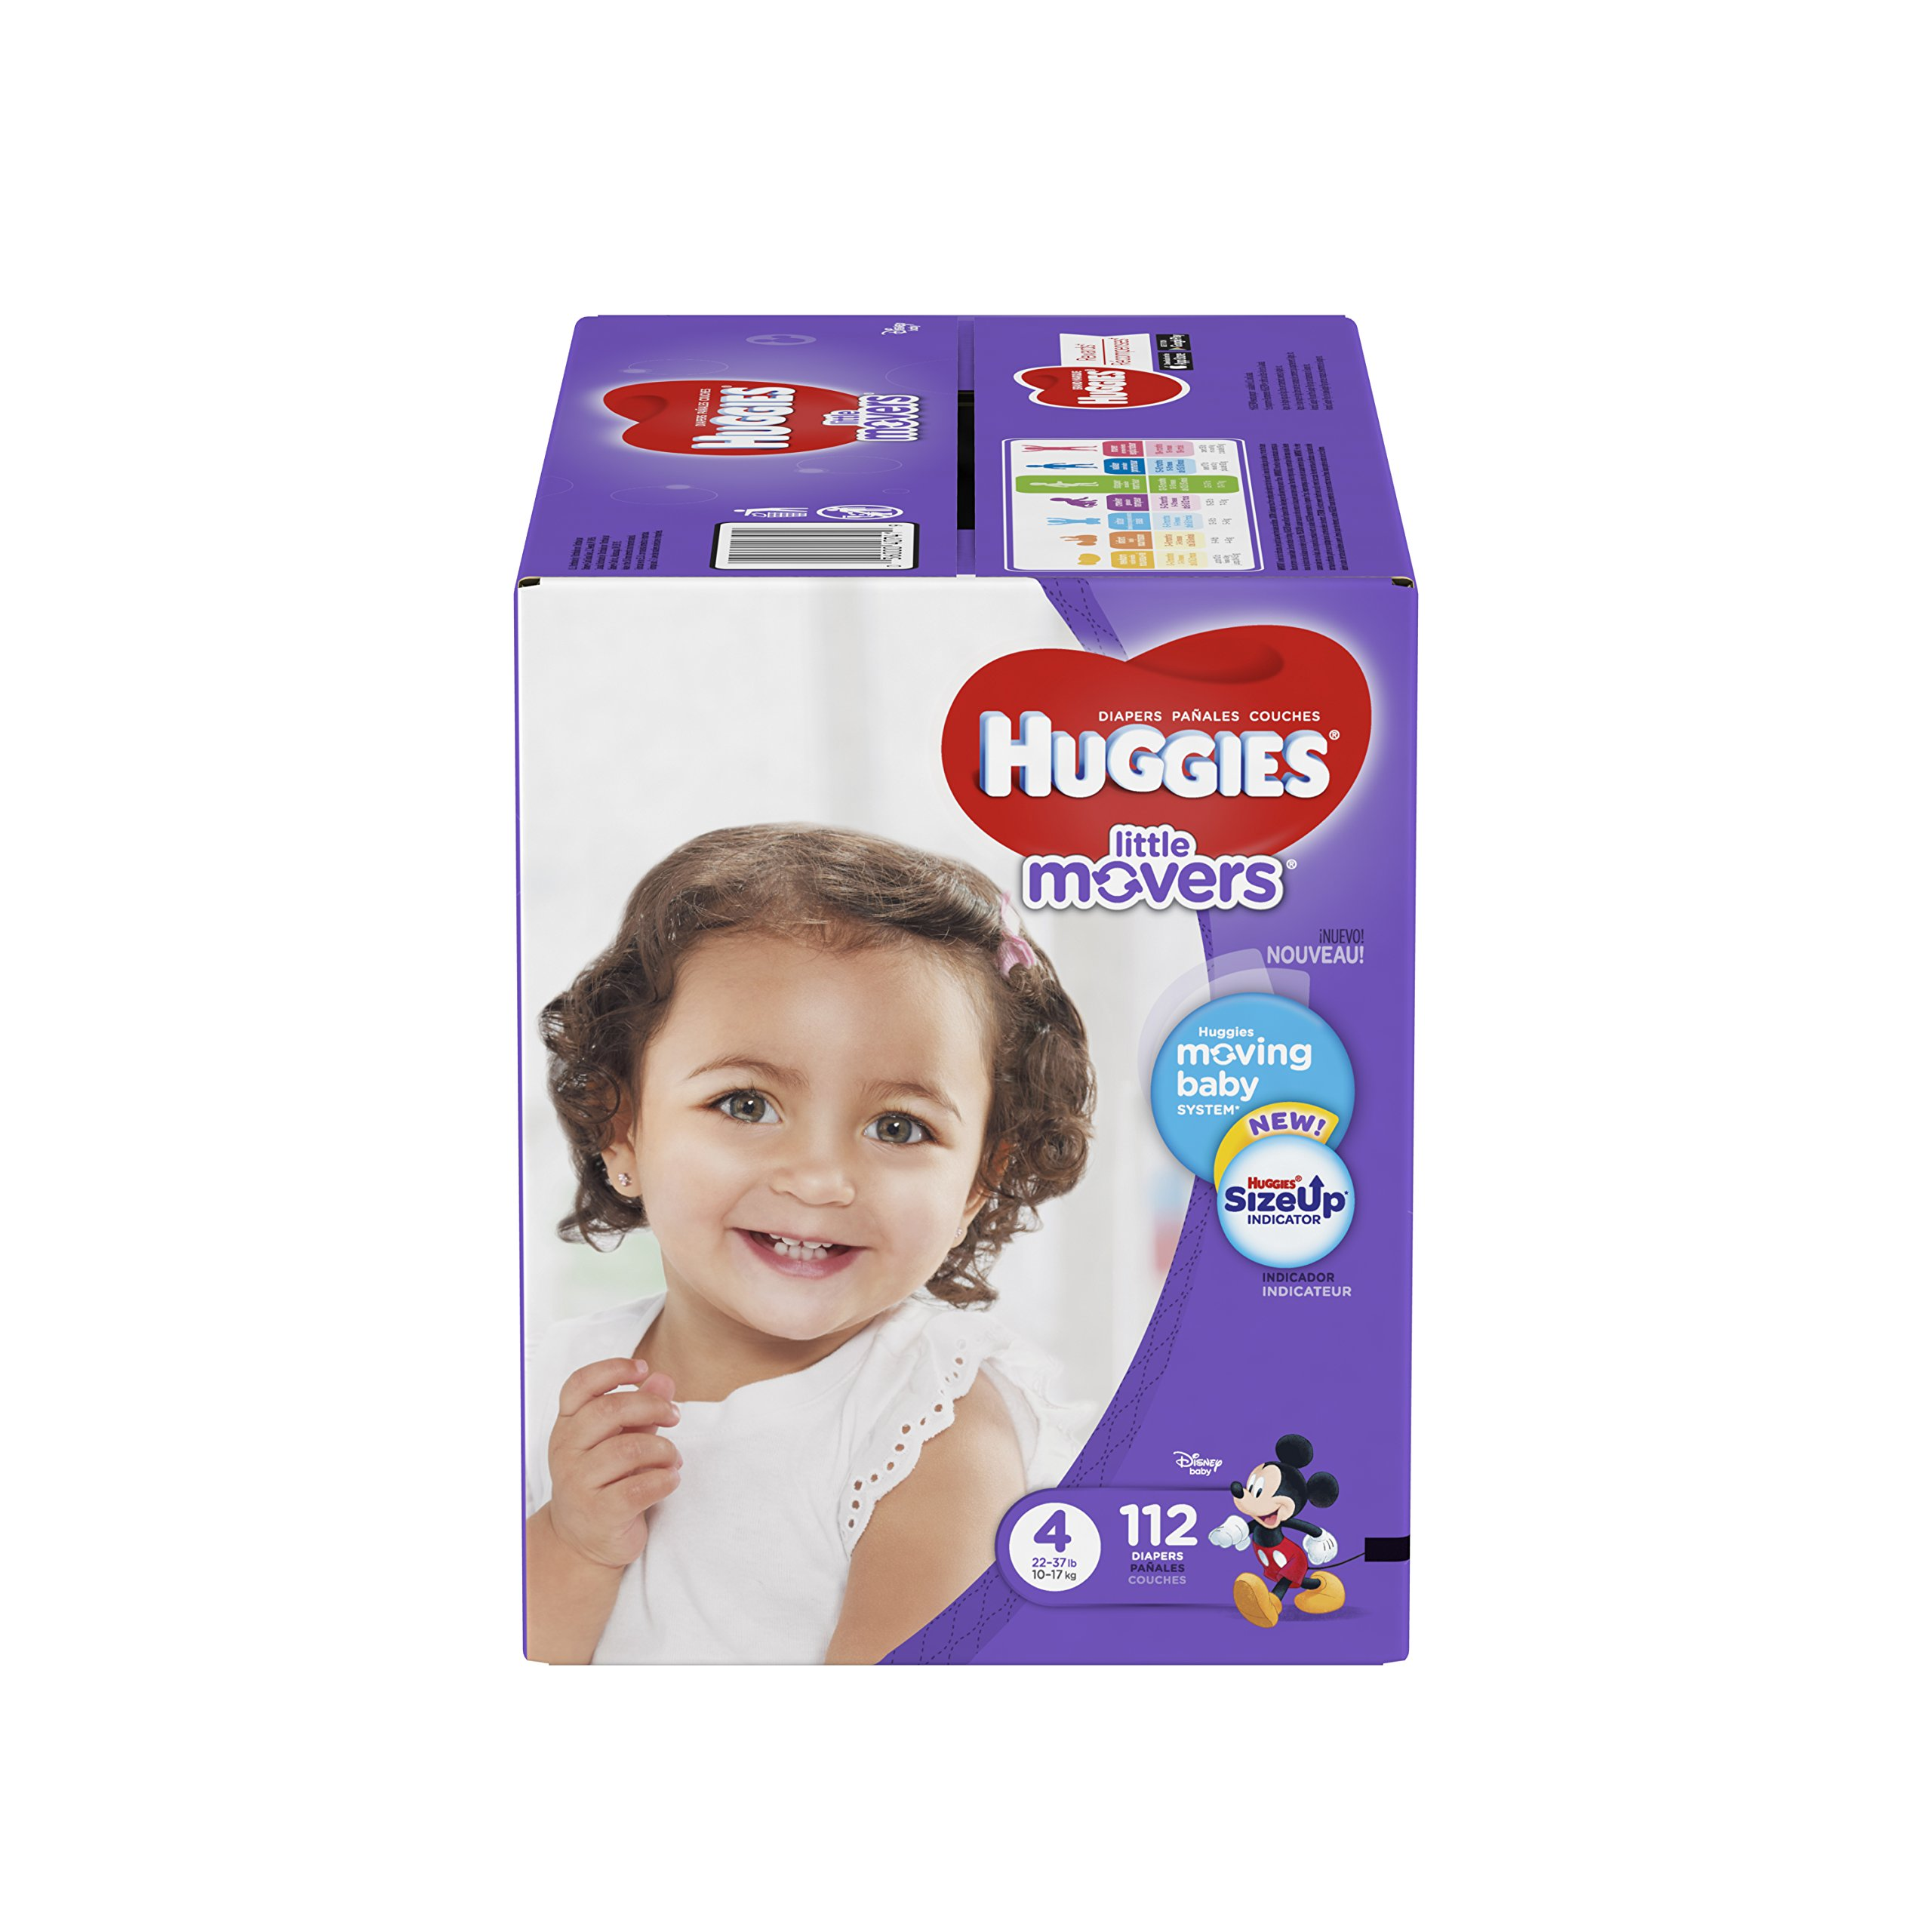 HUGGIES LITTLE MOVERS Diapers, Size 4 (22-37 lb.), 112